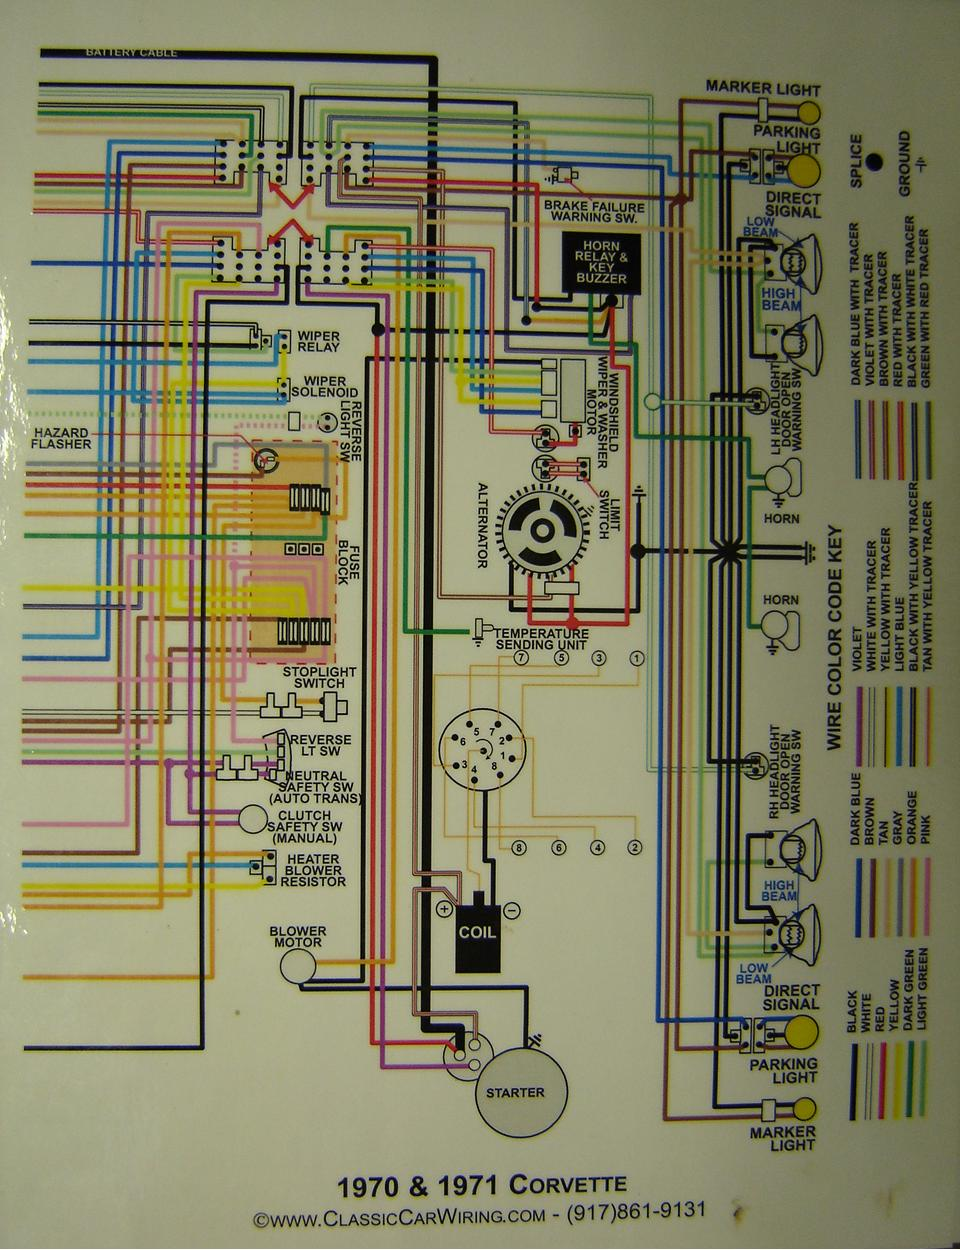 hight resolution of chevy diagrams 1963 impala battery wire diagrams 1970 71 corvette color wiring diagram 2 drawing b